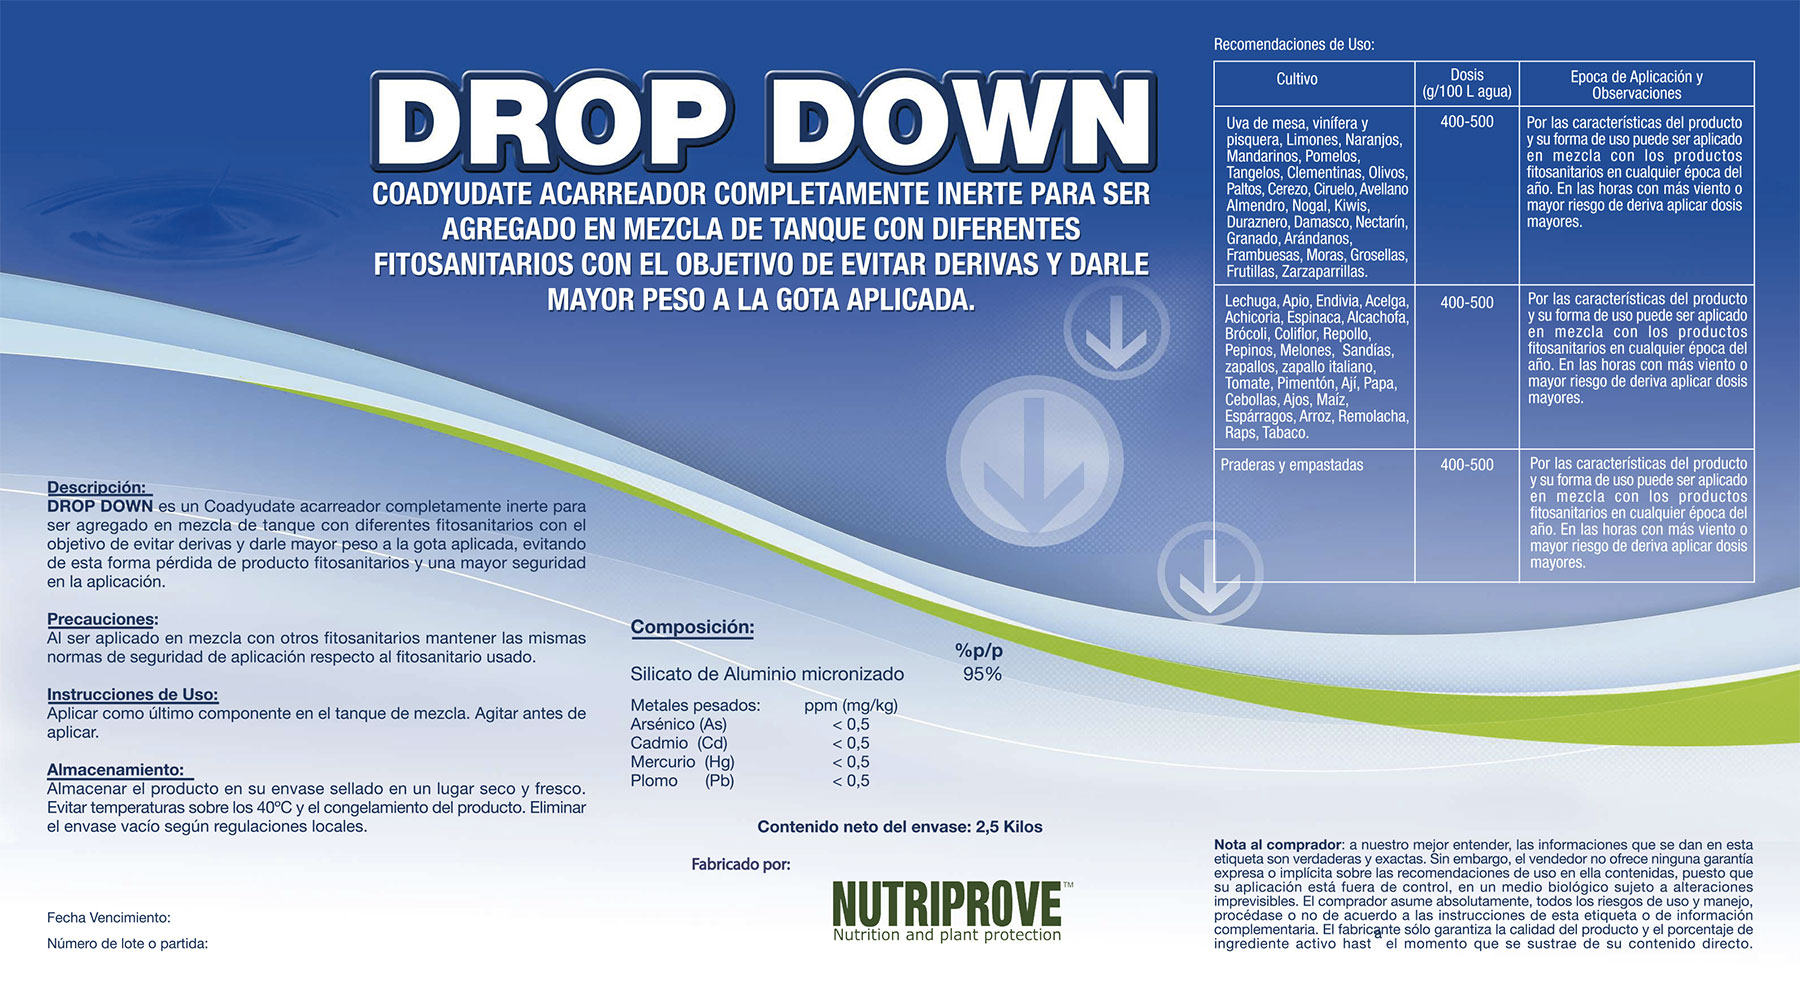 dropdown-etiqueta